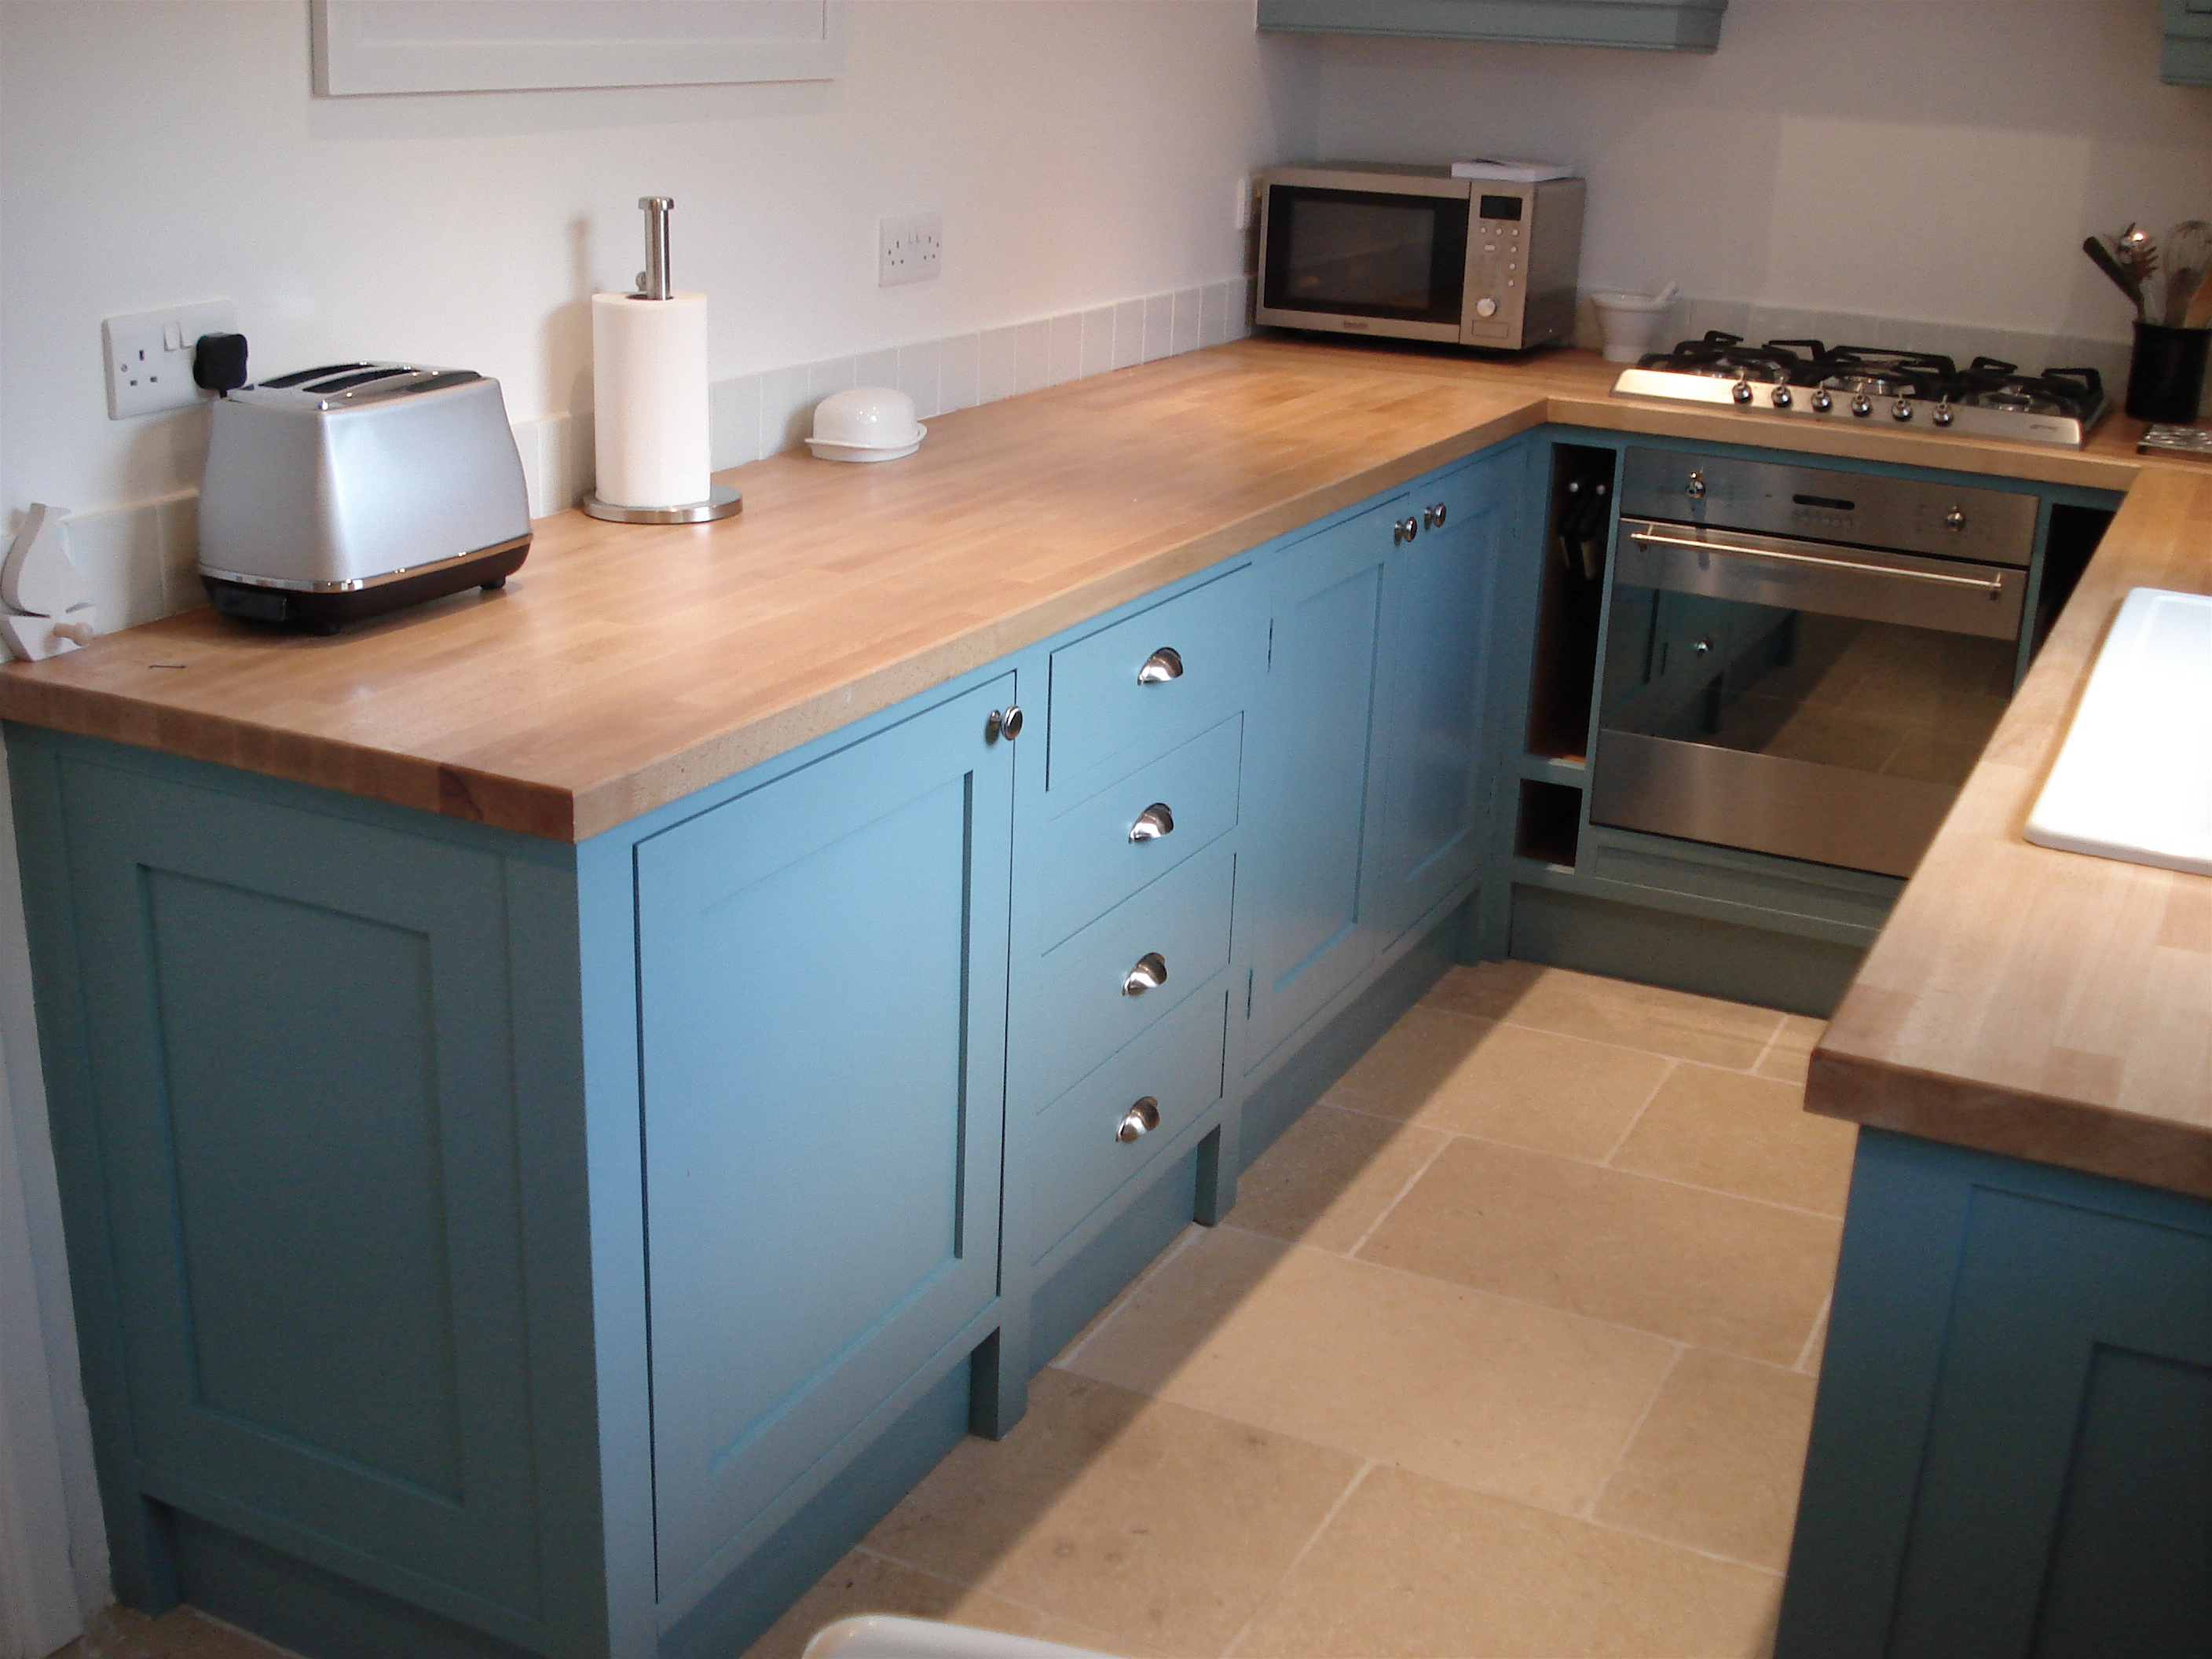 Kitchens and interior projects | Arnolds Kitchens